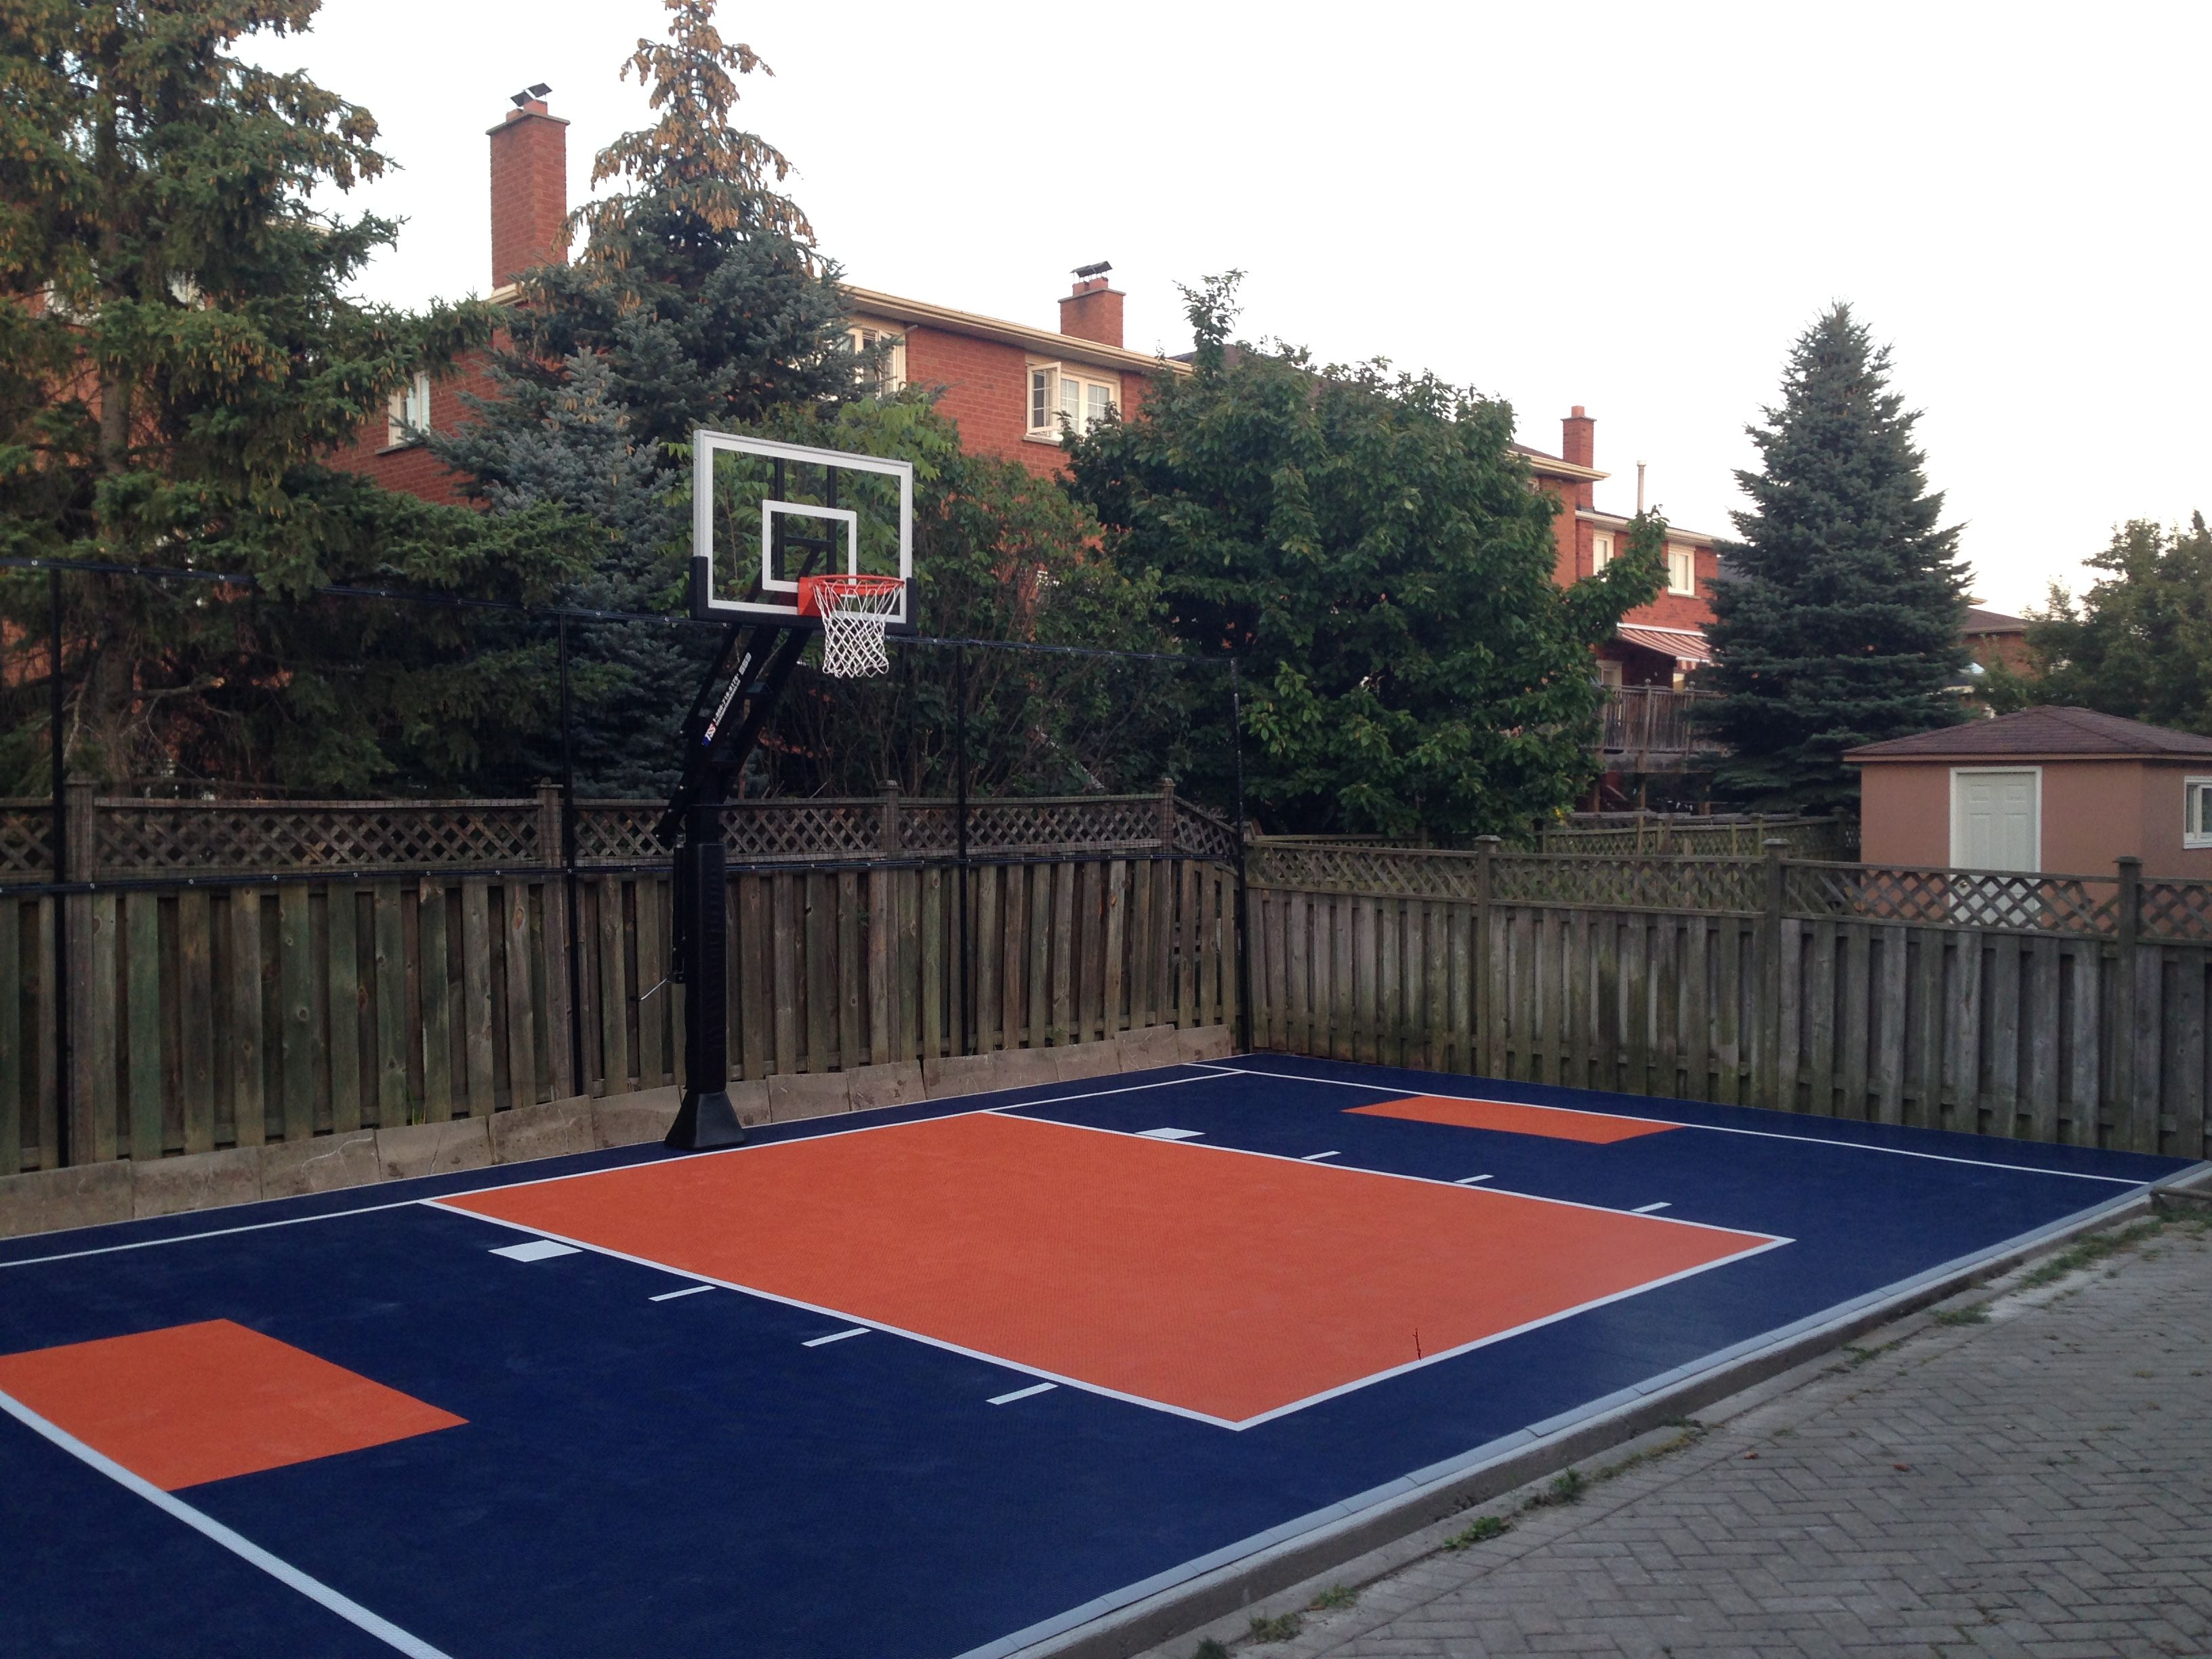 22 X 34 Backyard Court With Snapsports Duracourt Surface Vaughan On Canada Basketball Court Backyard Backyard Court Backyard Basketball